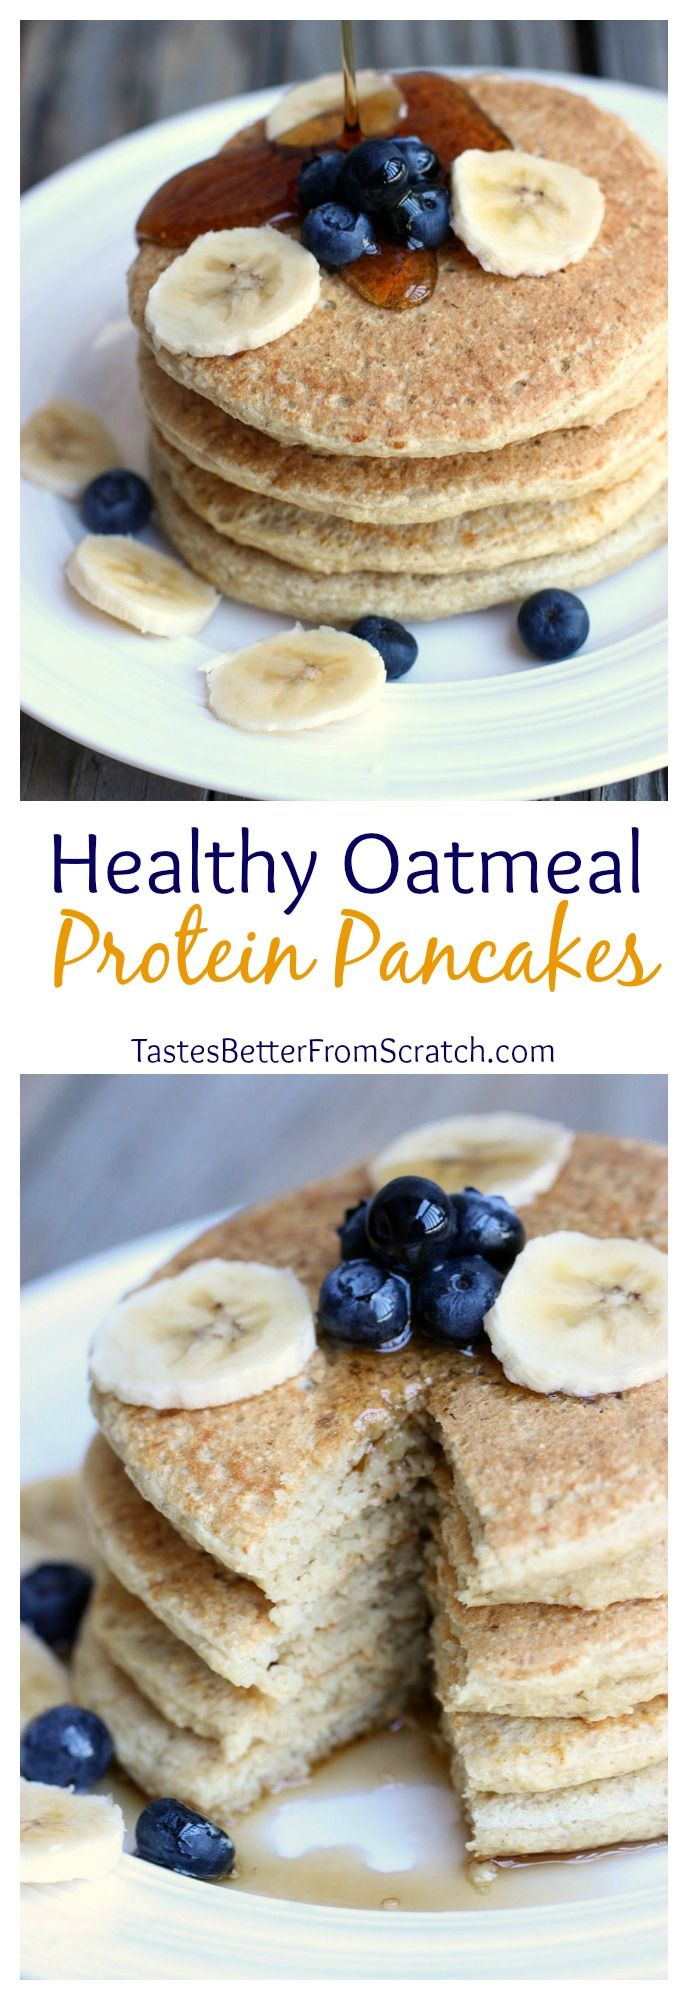 Healthy Oatmeal Protein Pancakes (Made without protein powder!)